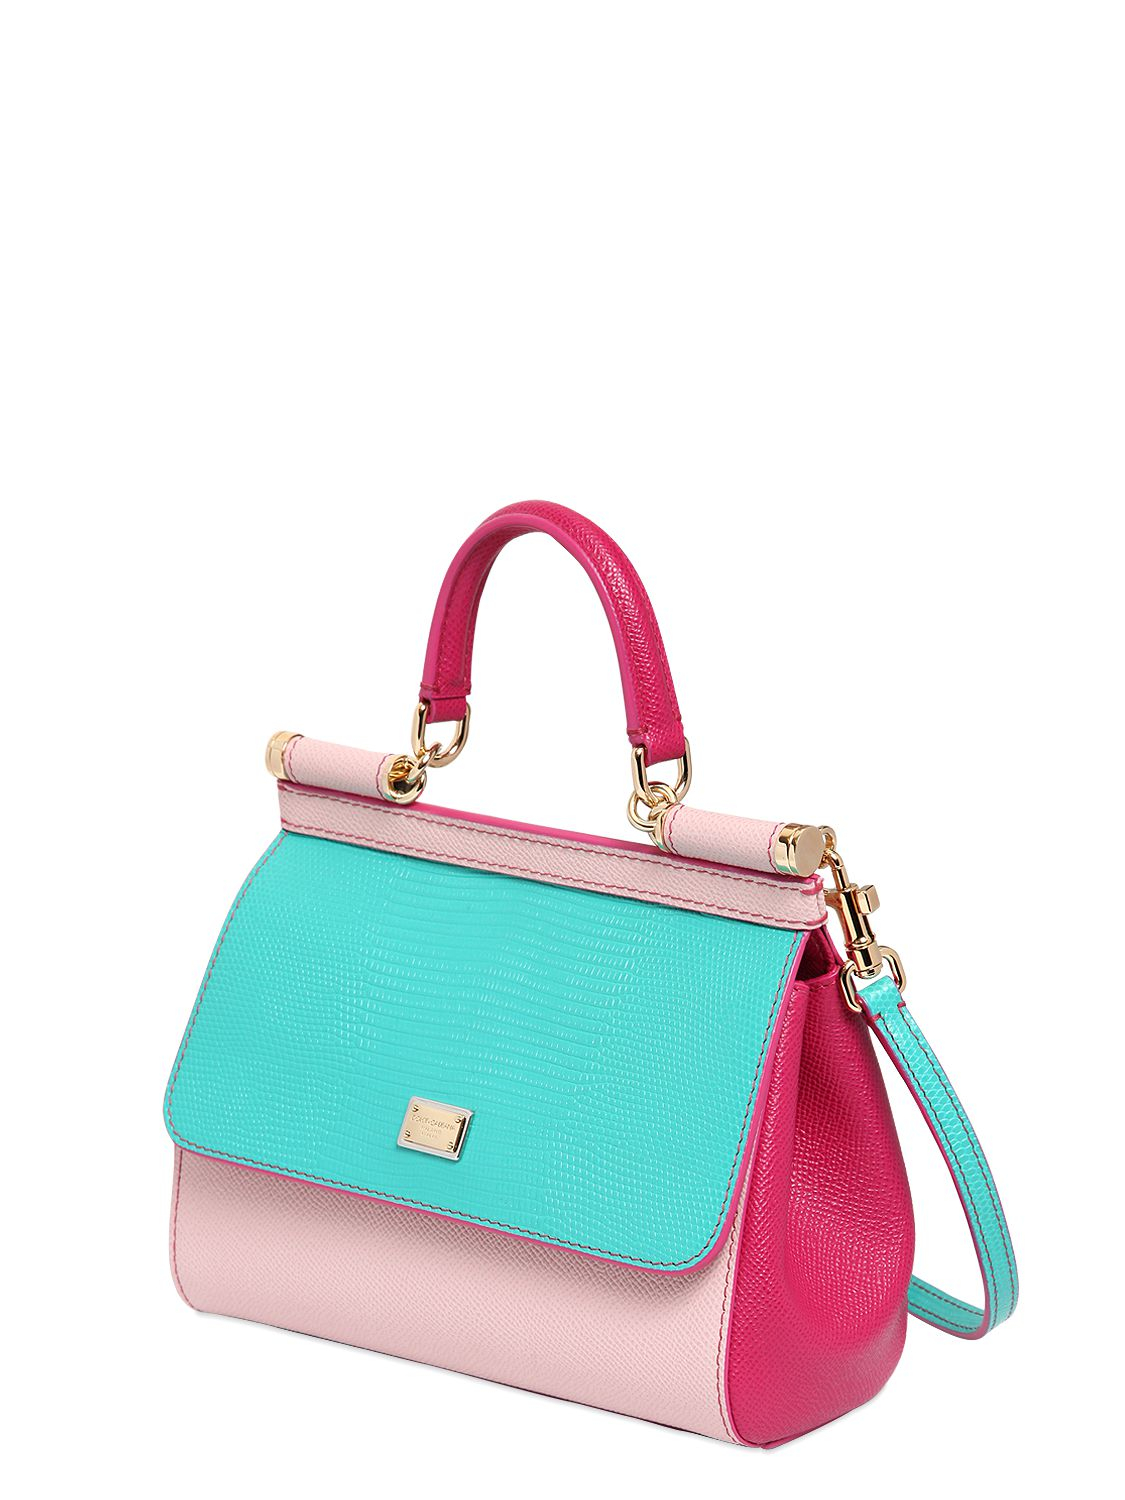 8ad5de937d78 Lyst - Dolce   Gabbana Small Sicily Iguana Embossed Leather Bag in Pink